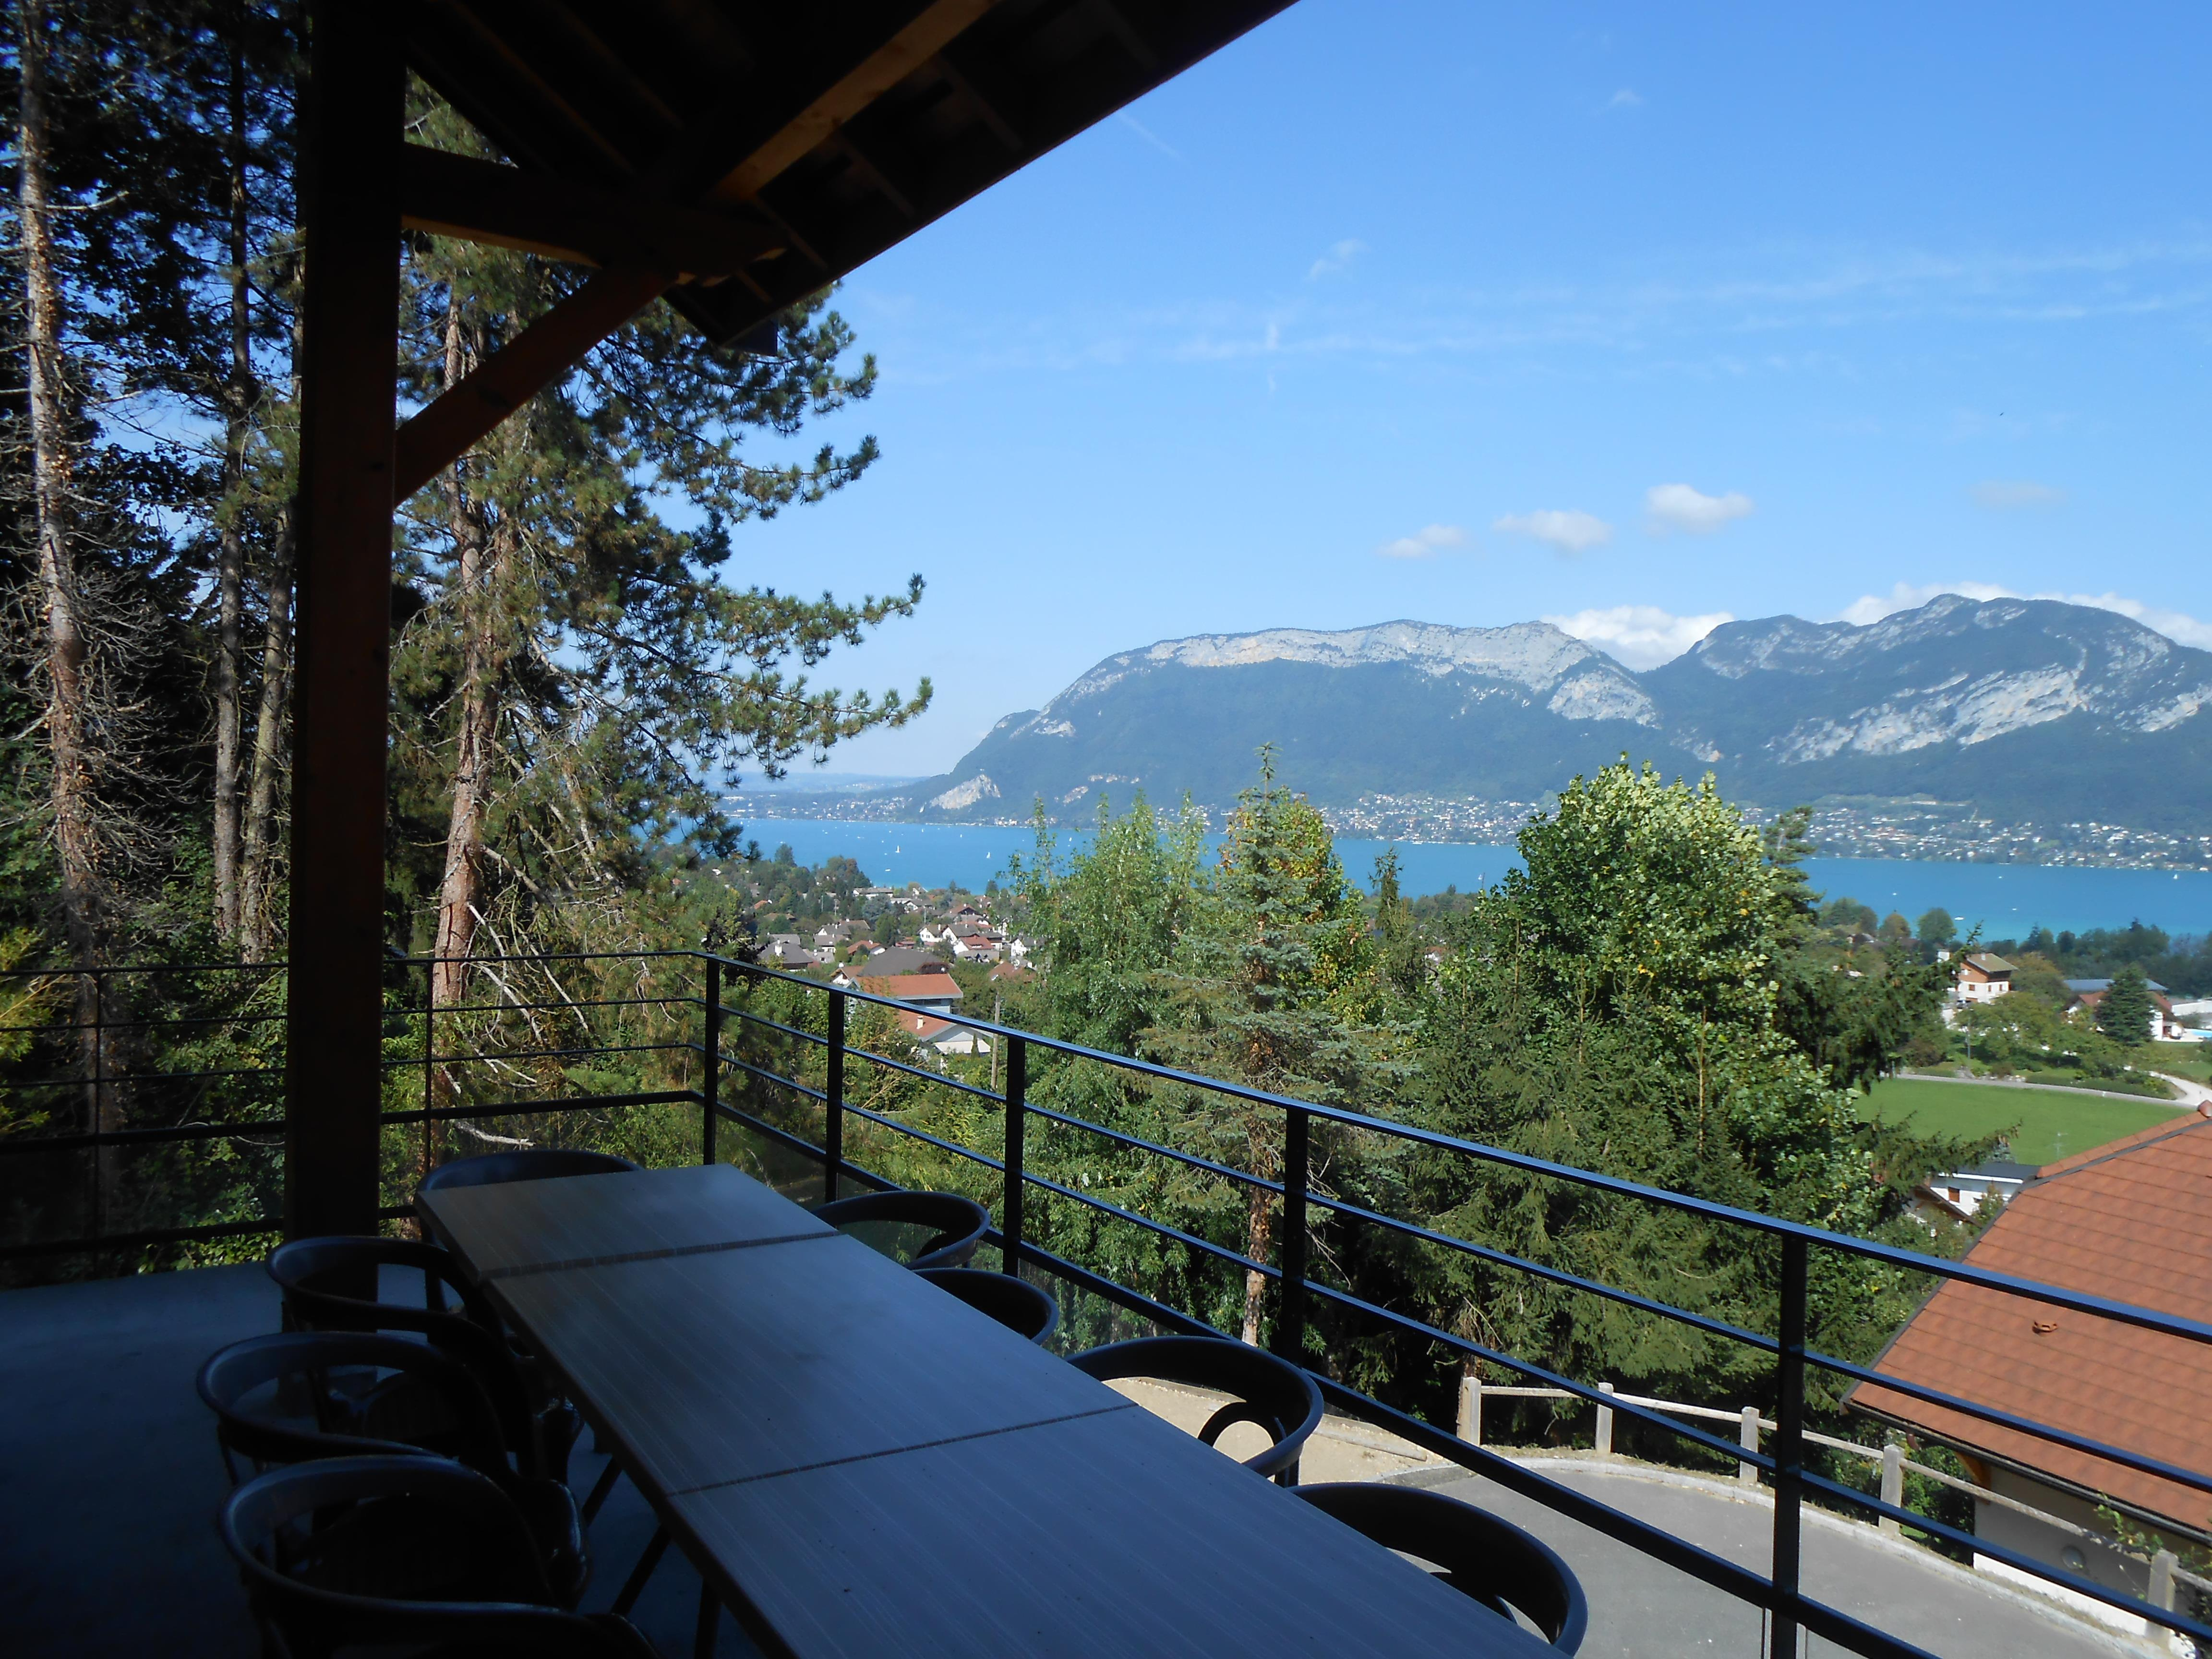 Location - Appartement T4 116M² Vue Lac  4 Chambres 1 Salle De Bains - Camping Le Panoramic